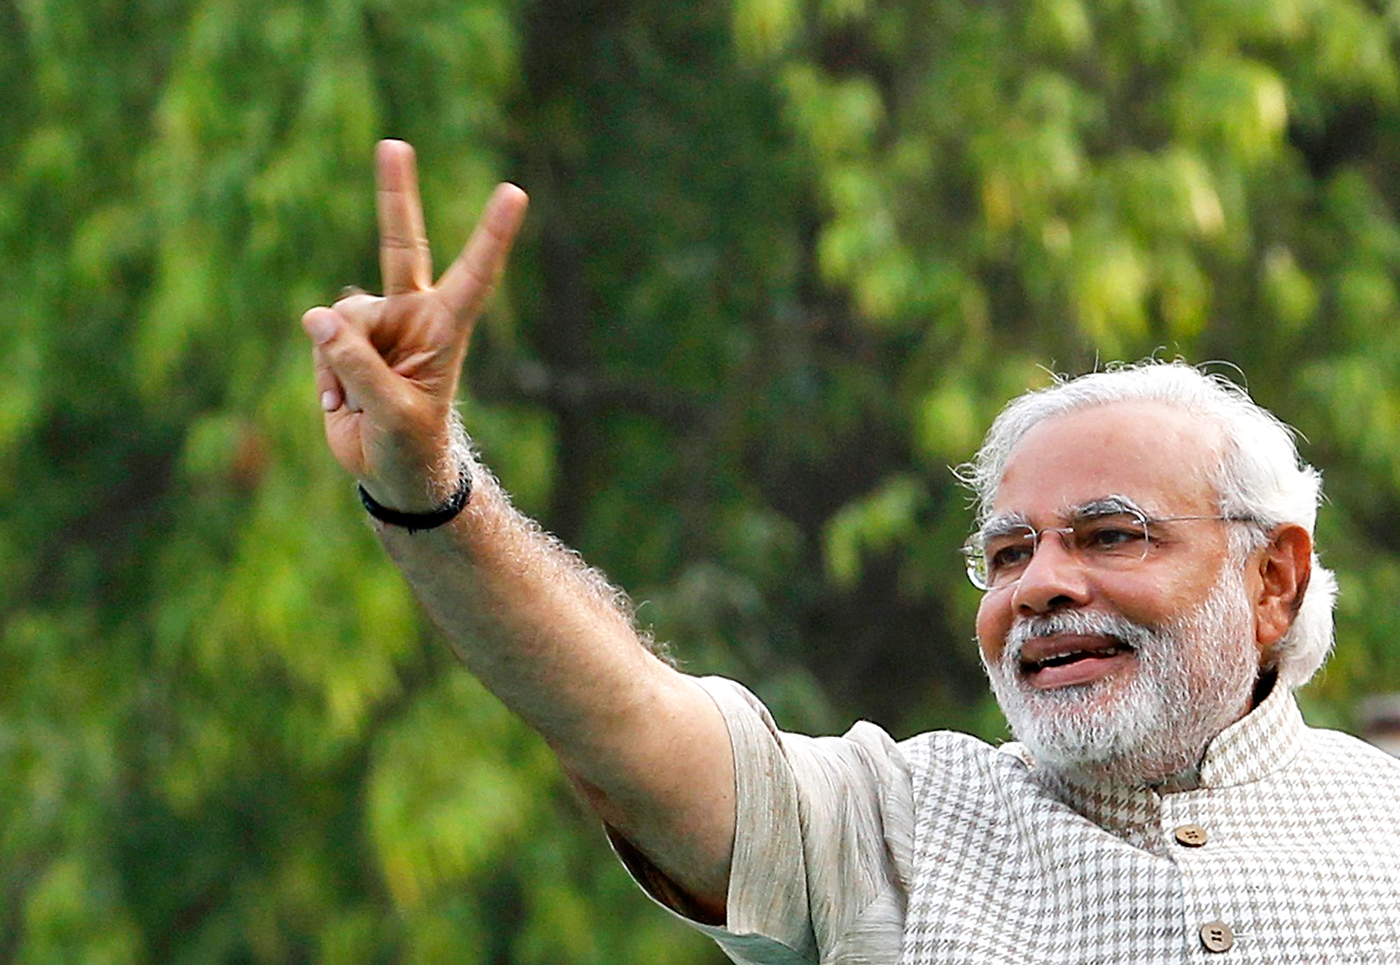 Hindu nationalist Narendra Modi, the prime ministerial candidate for India's main opposition Bharatiya Janata Party (BJP), gestures during a public meeting in Vadodra, in the western Indian state of Gujarat May 16, 2014. Photo: Reuters